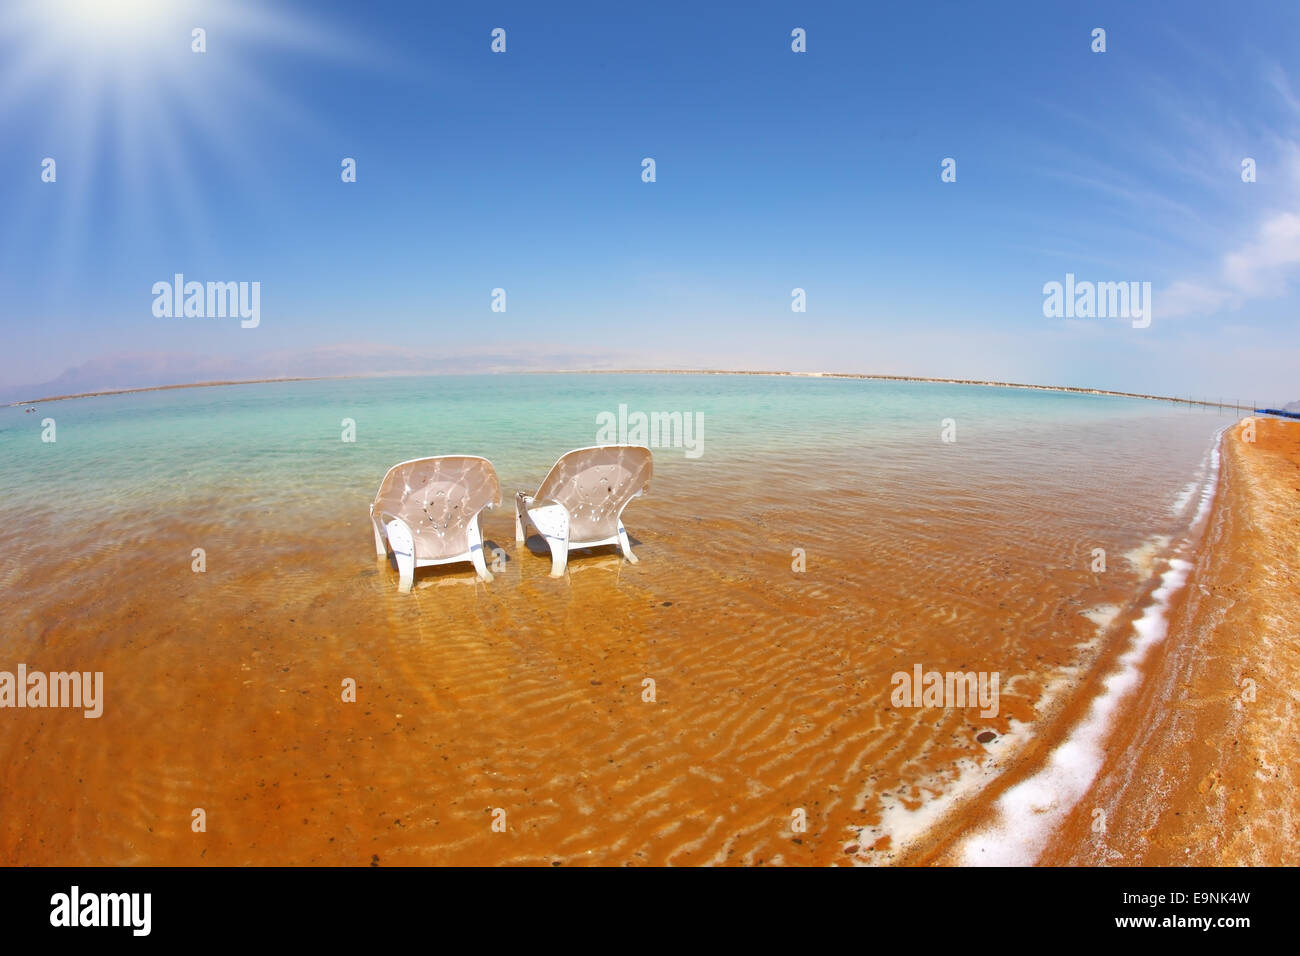 The sun shines on the beach therapeutic - Stock Image